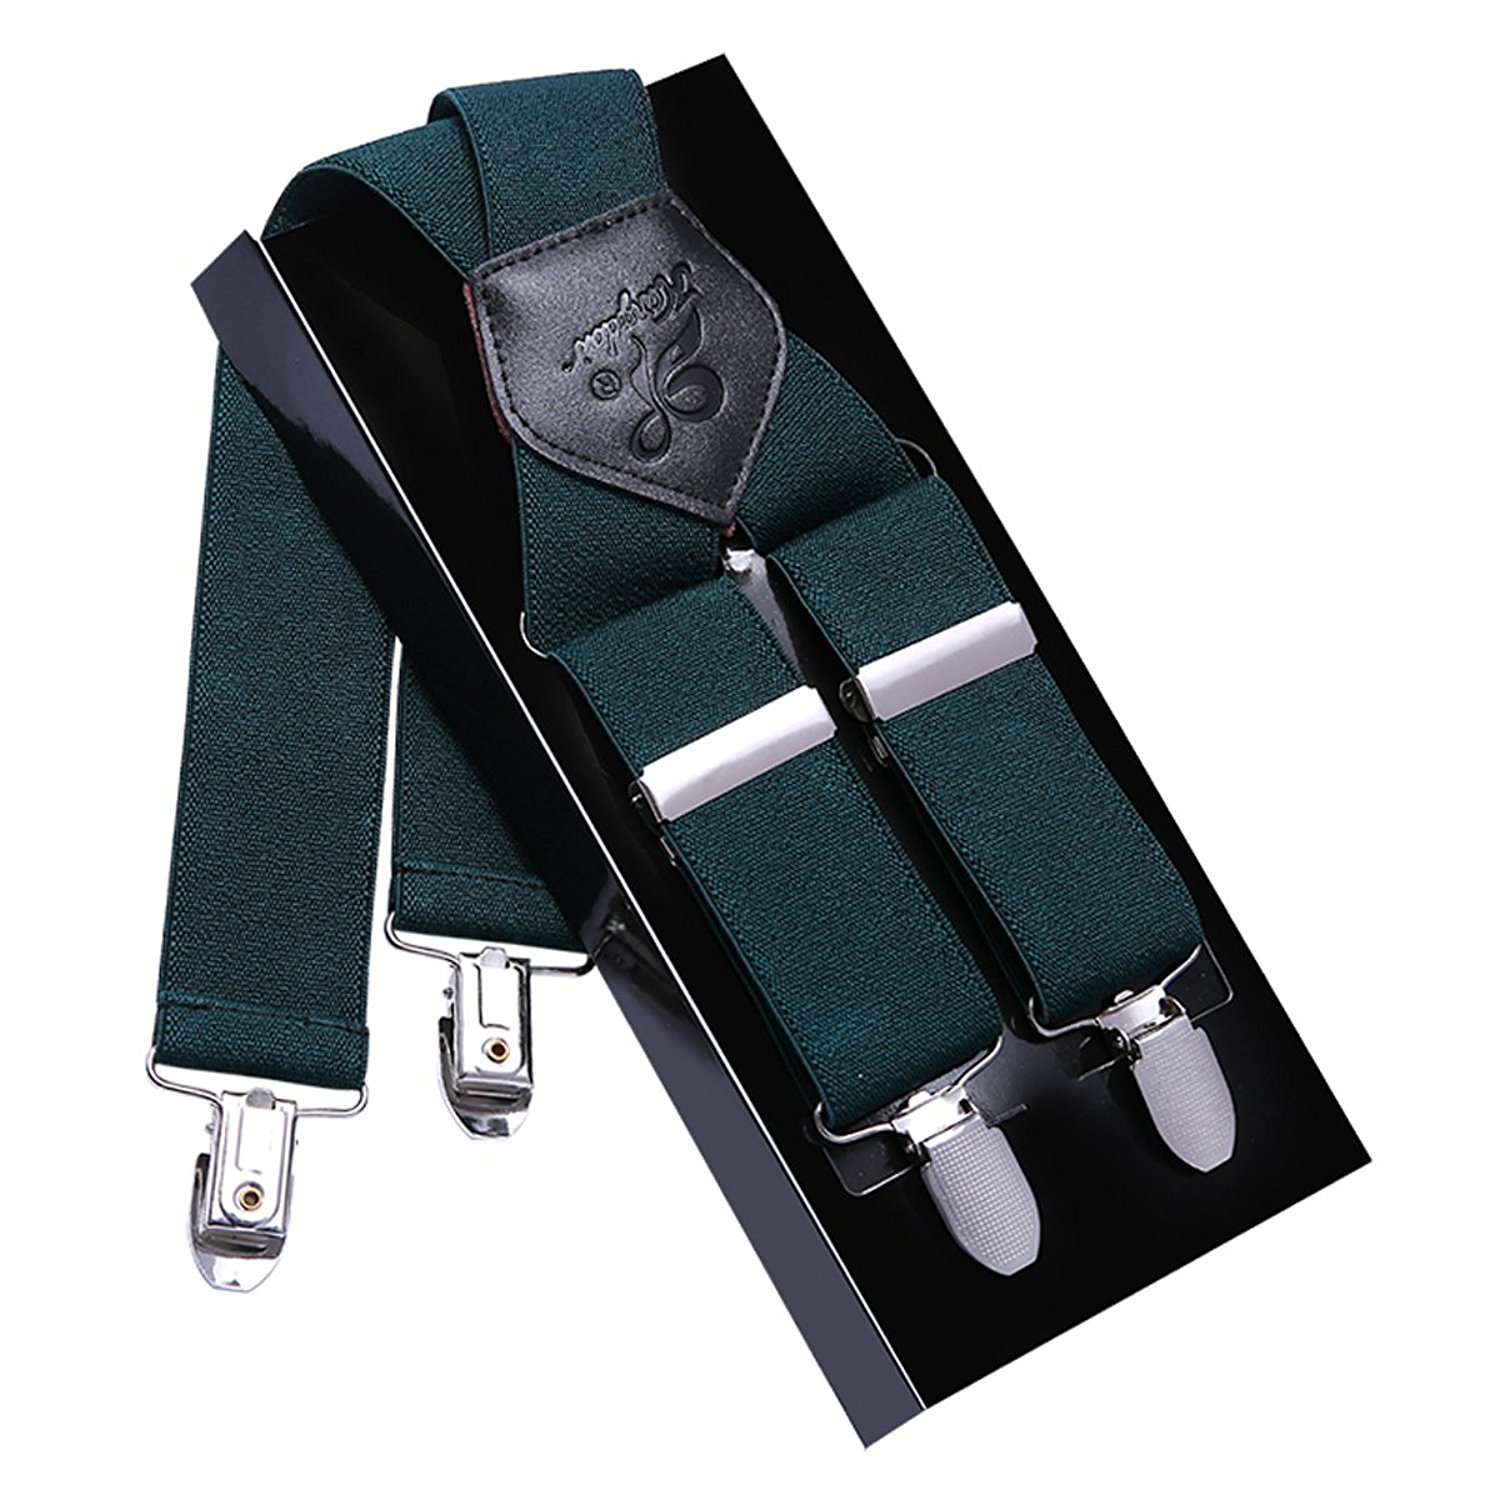 Men Suspenders X Back KANGDAI 4 Clips Wide Heavy Duty Suspenders for Tuxedo & Wedding